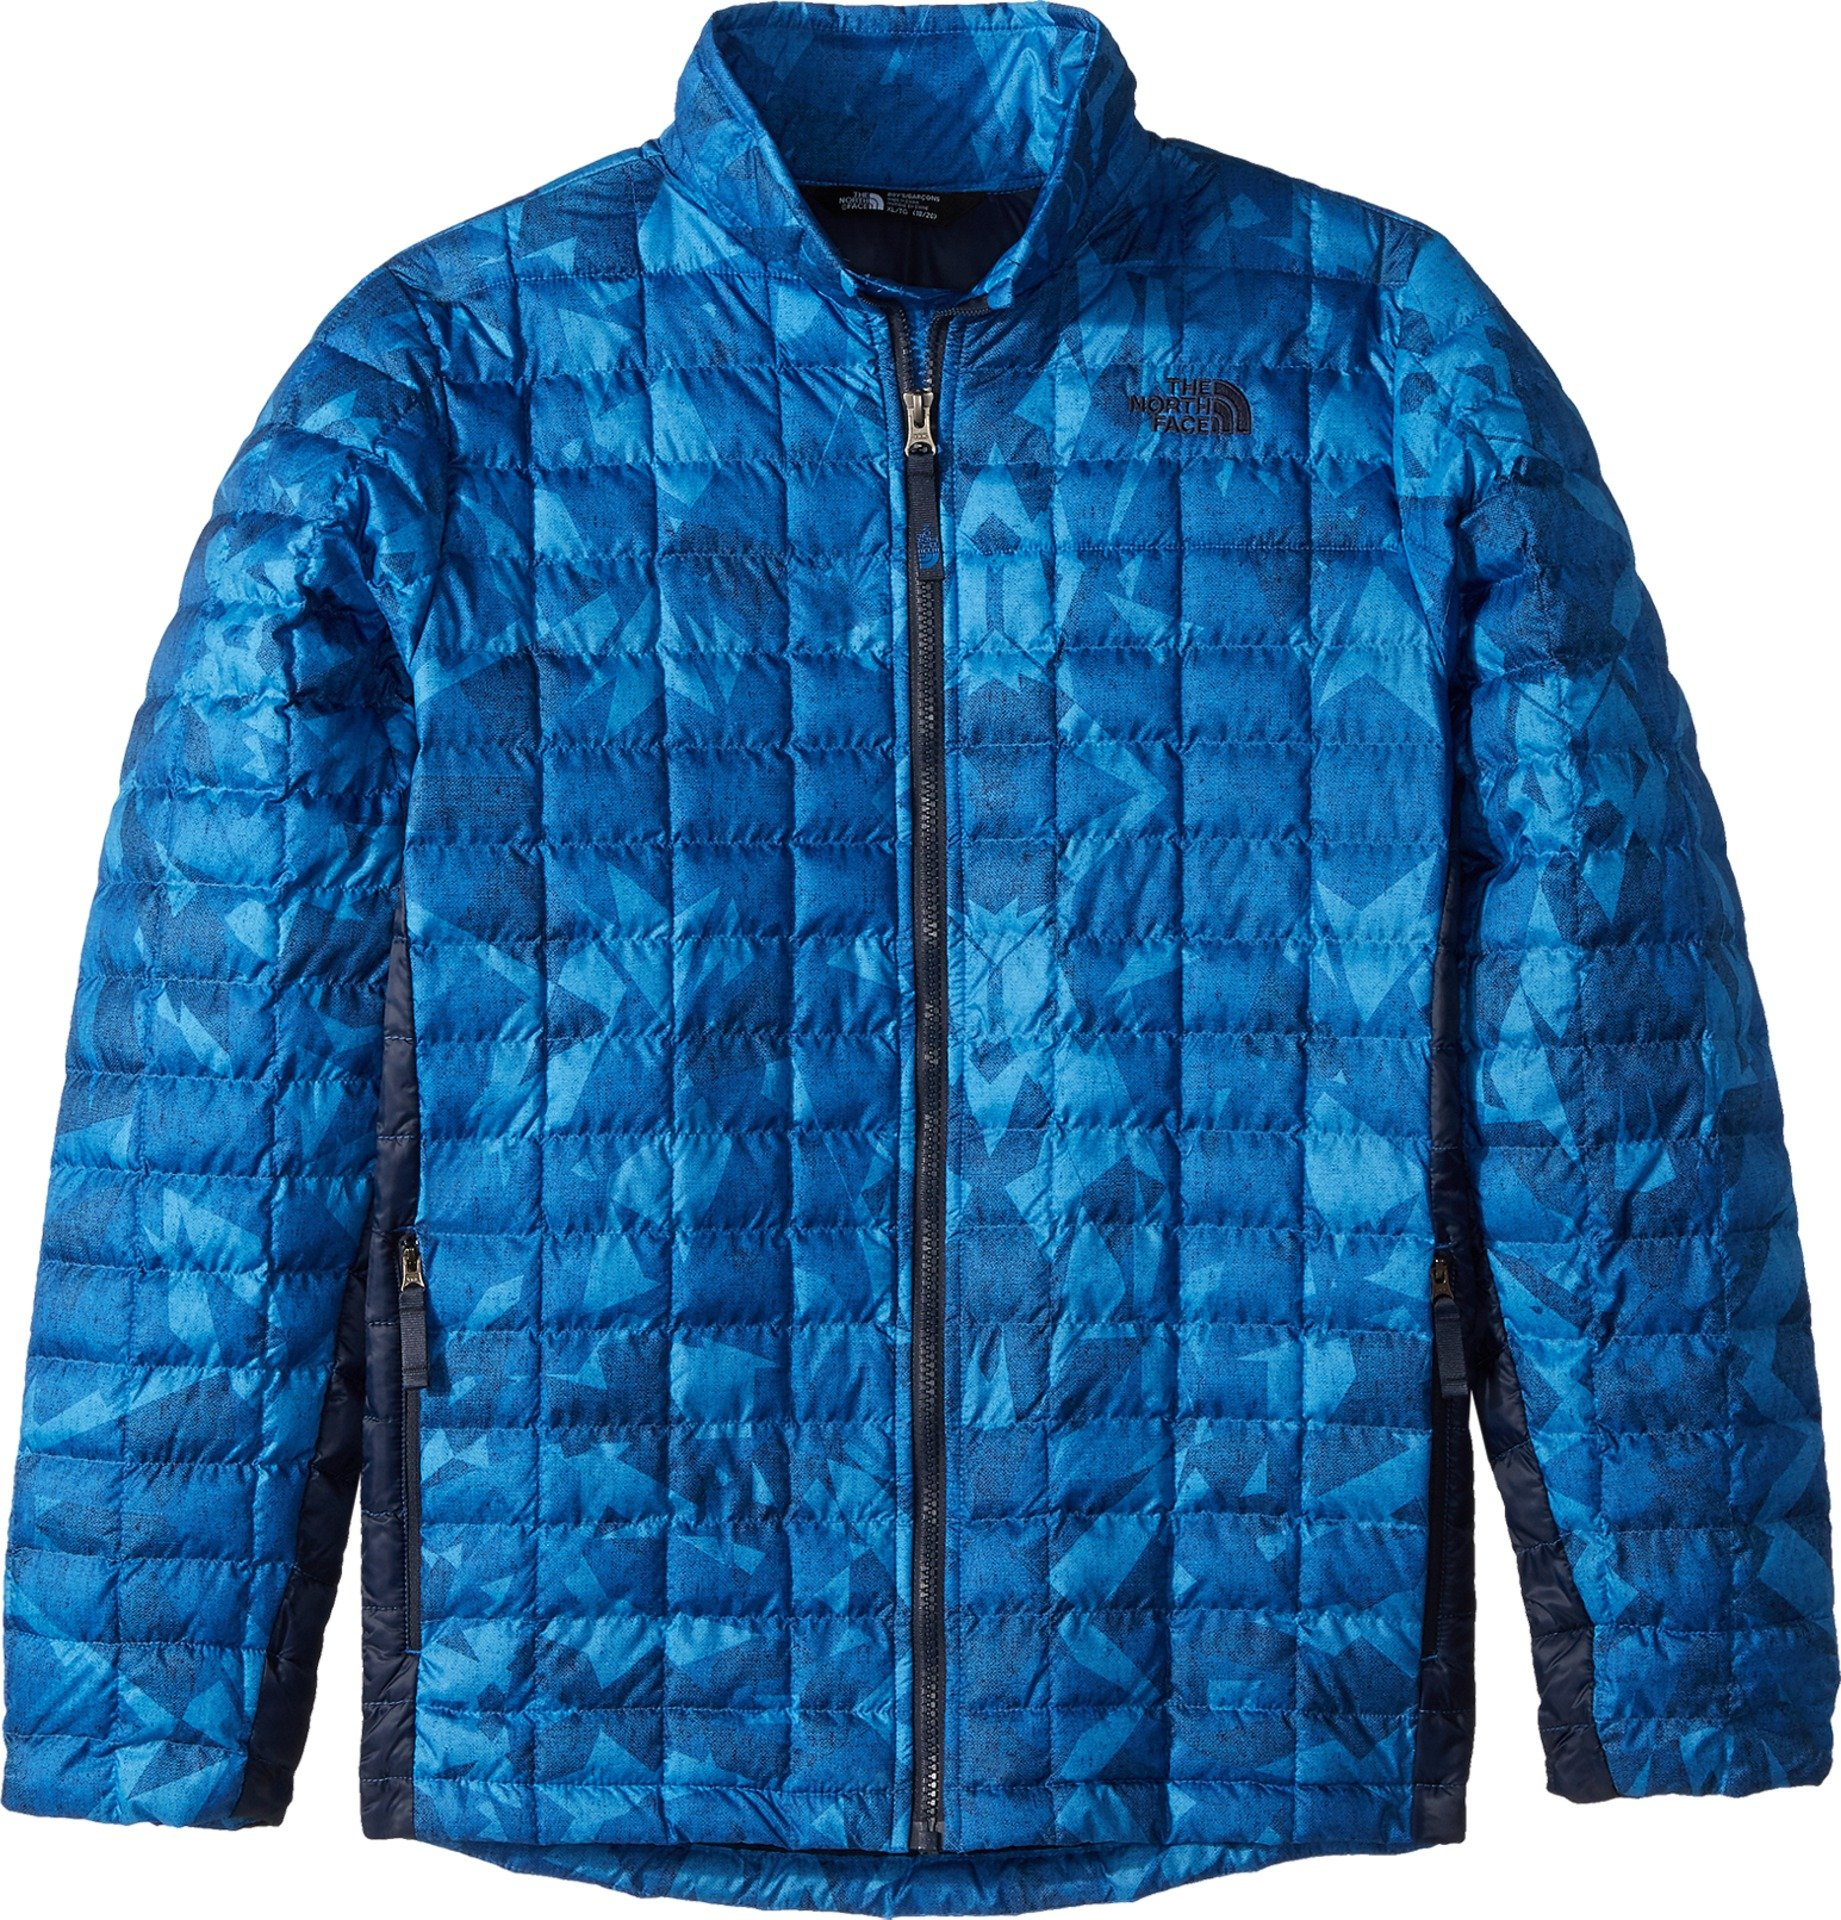 The North Face Kids Boy's Thermoball Full Zip Jacket (Little Kids/Big Kids Turkish Sea Metric Mountain Print/Cosmic Blue Large by The North Face